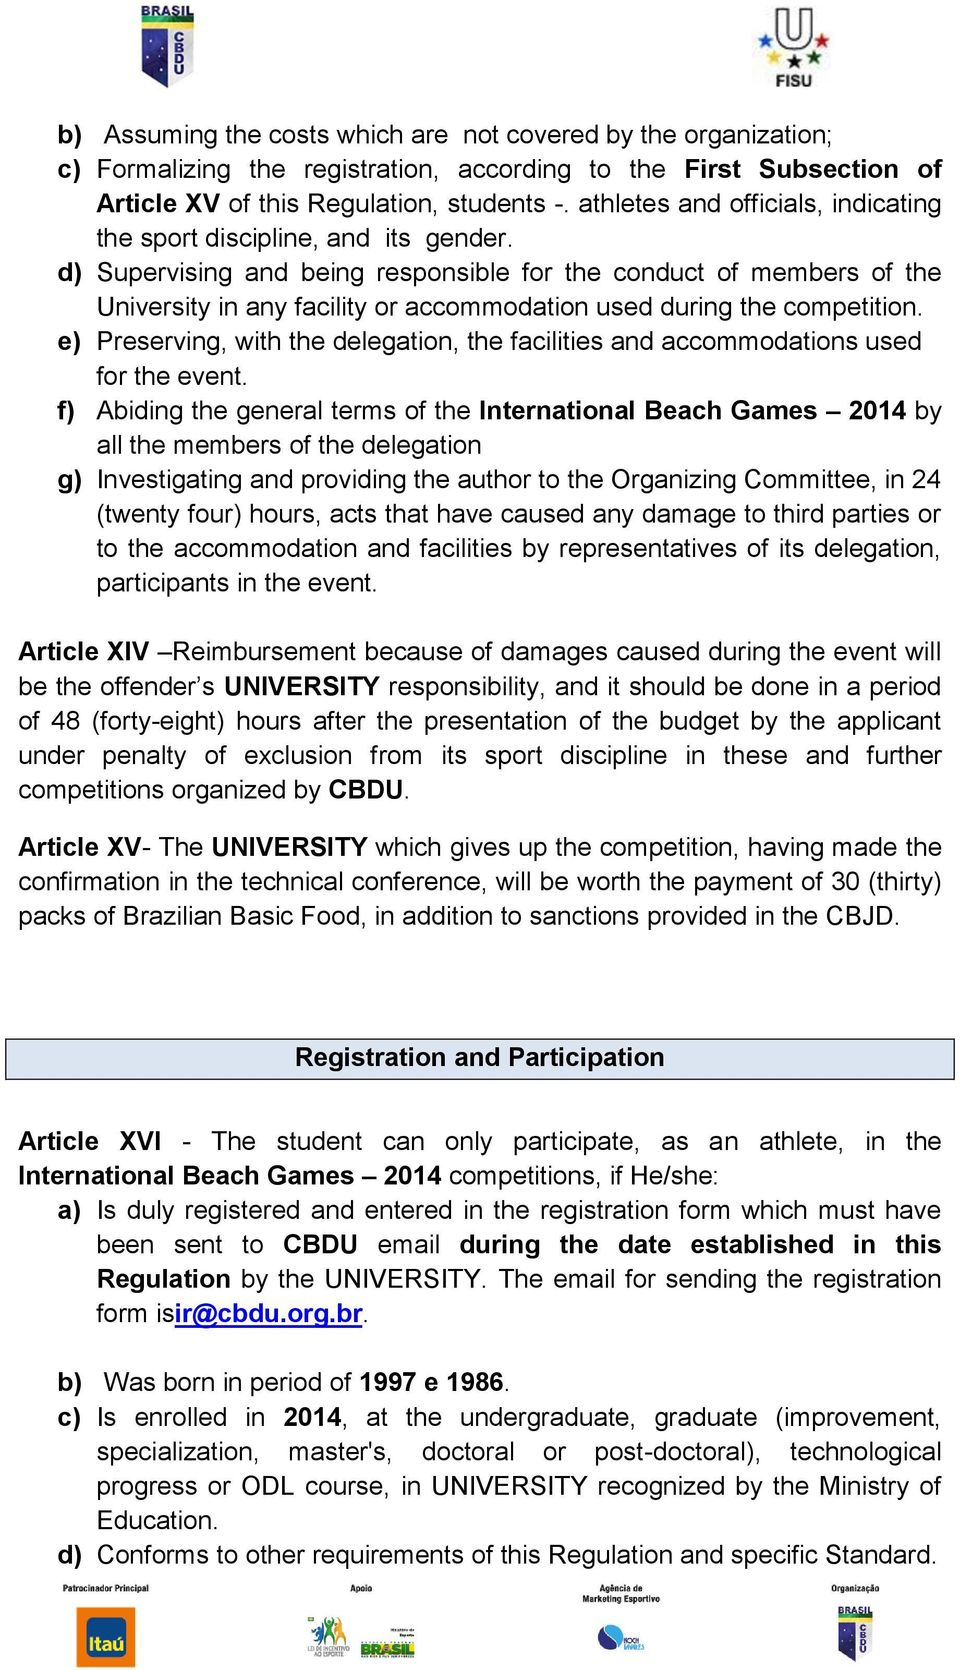 d) Supervising and being responsible for the conduct of members of the University in any facility or accommodation used during the competition.